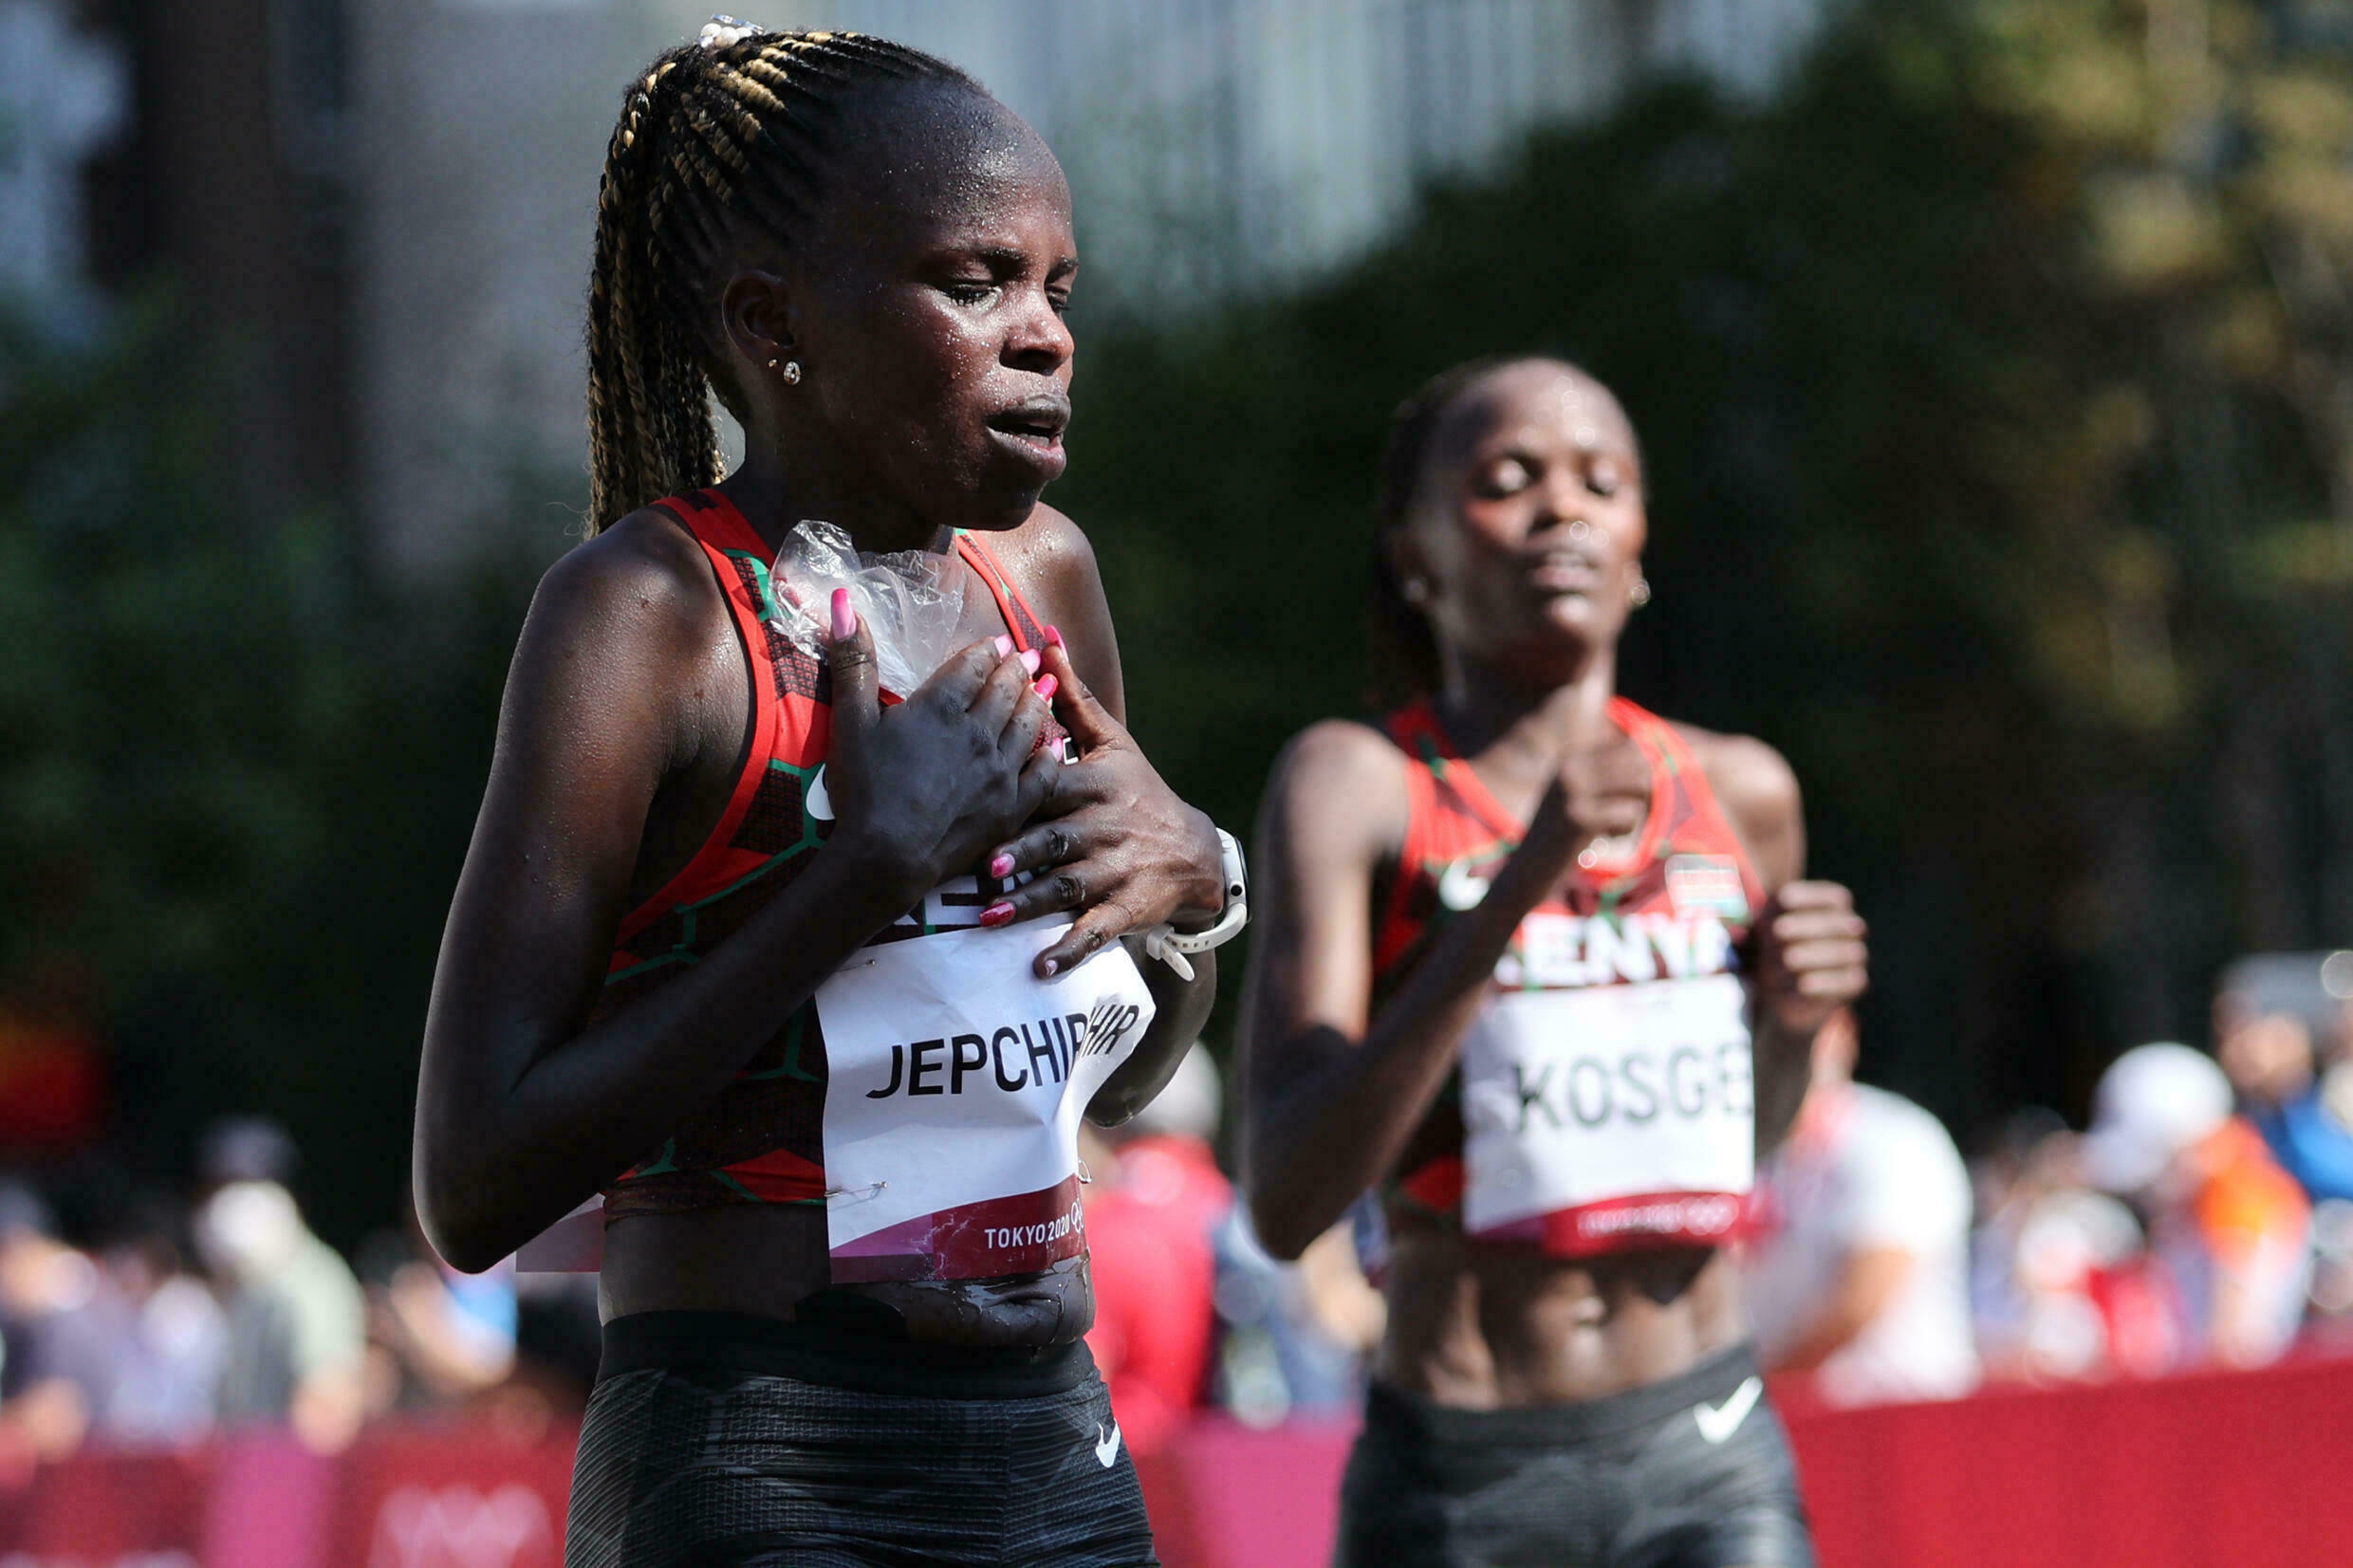 Kenya's Peres Jepchirchir (L) inflicted world record holder and compatriot Brigid Kosgei's (R) first defeat in five marathons when she won the Olympic title